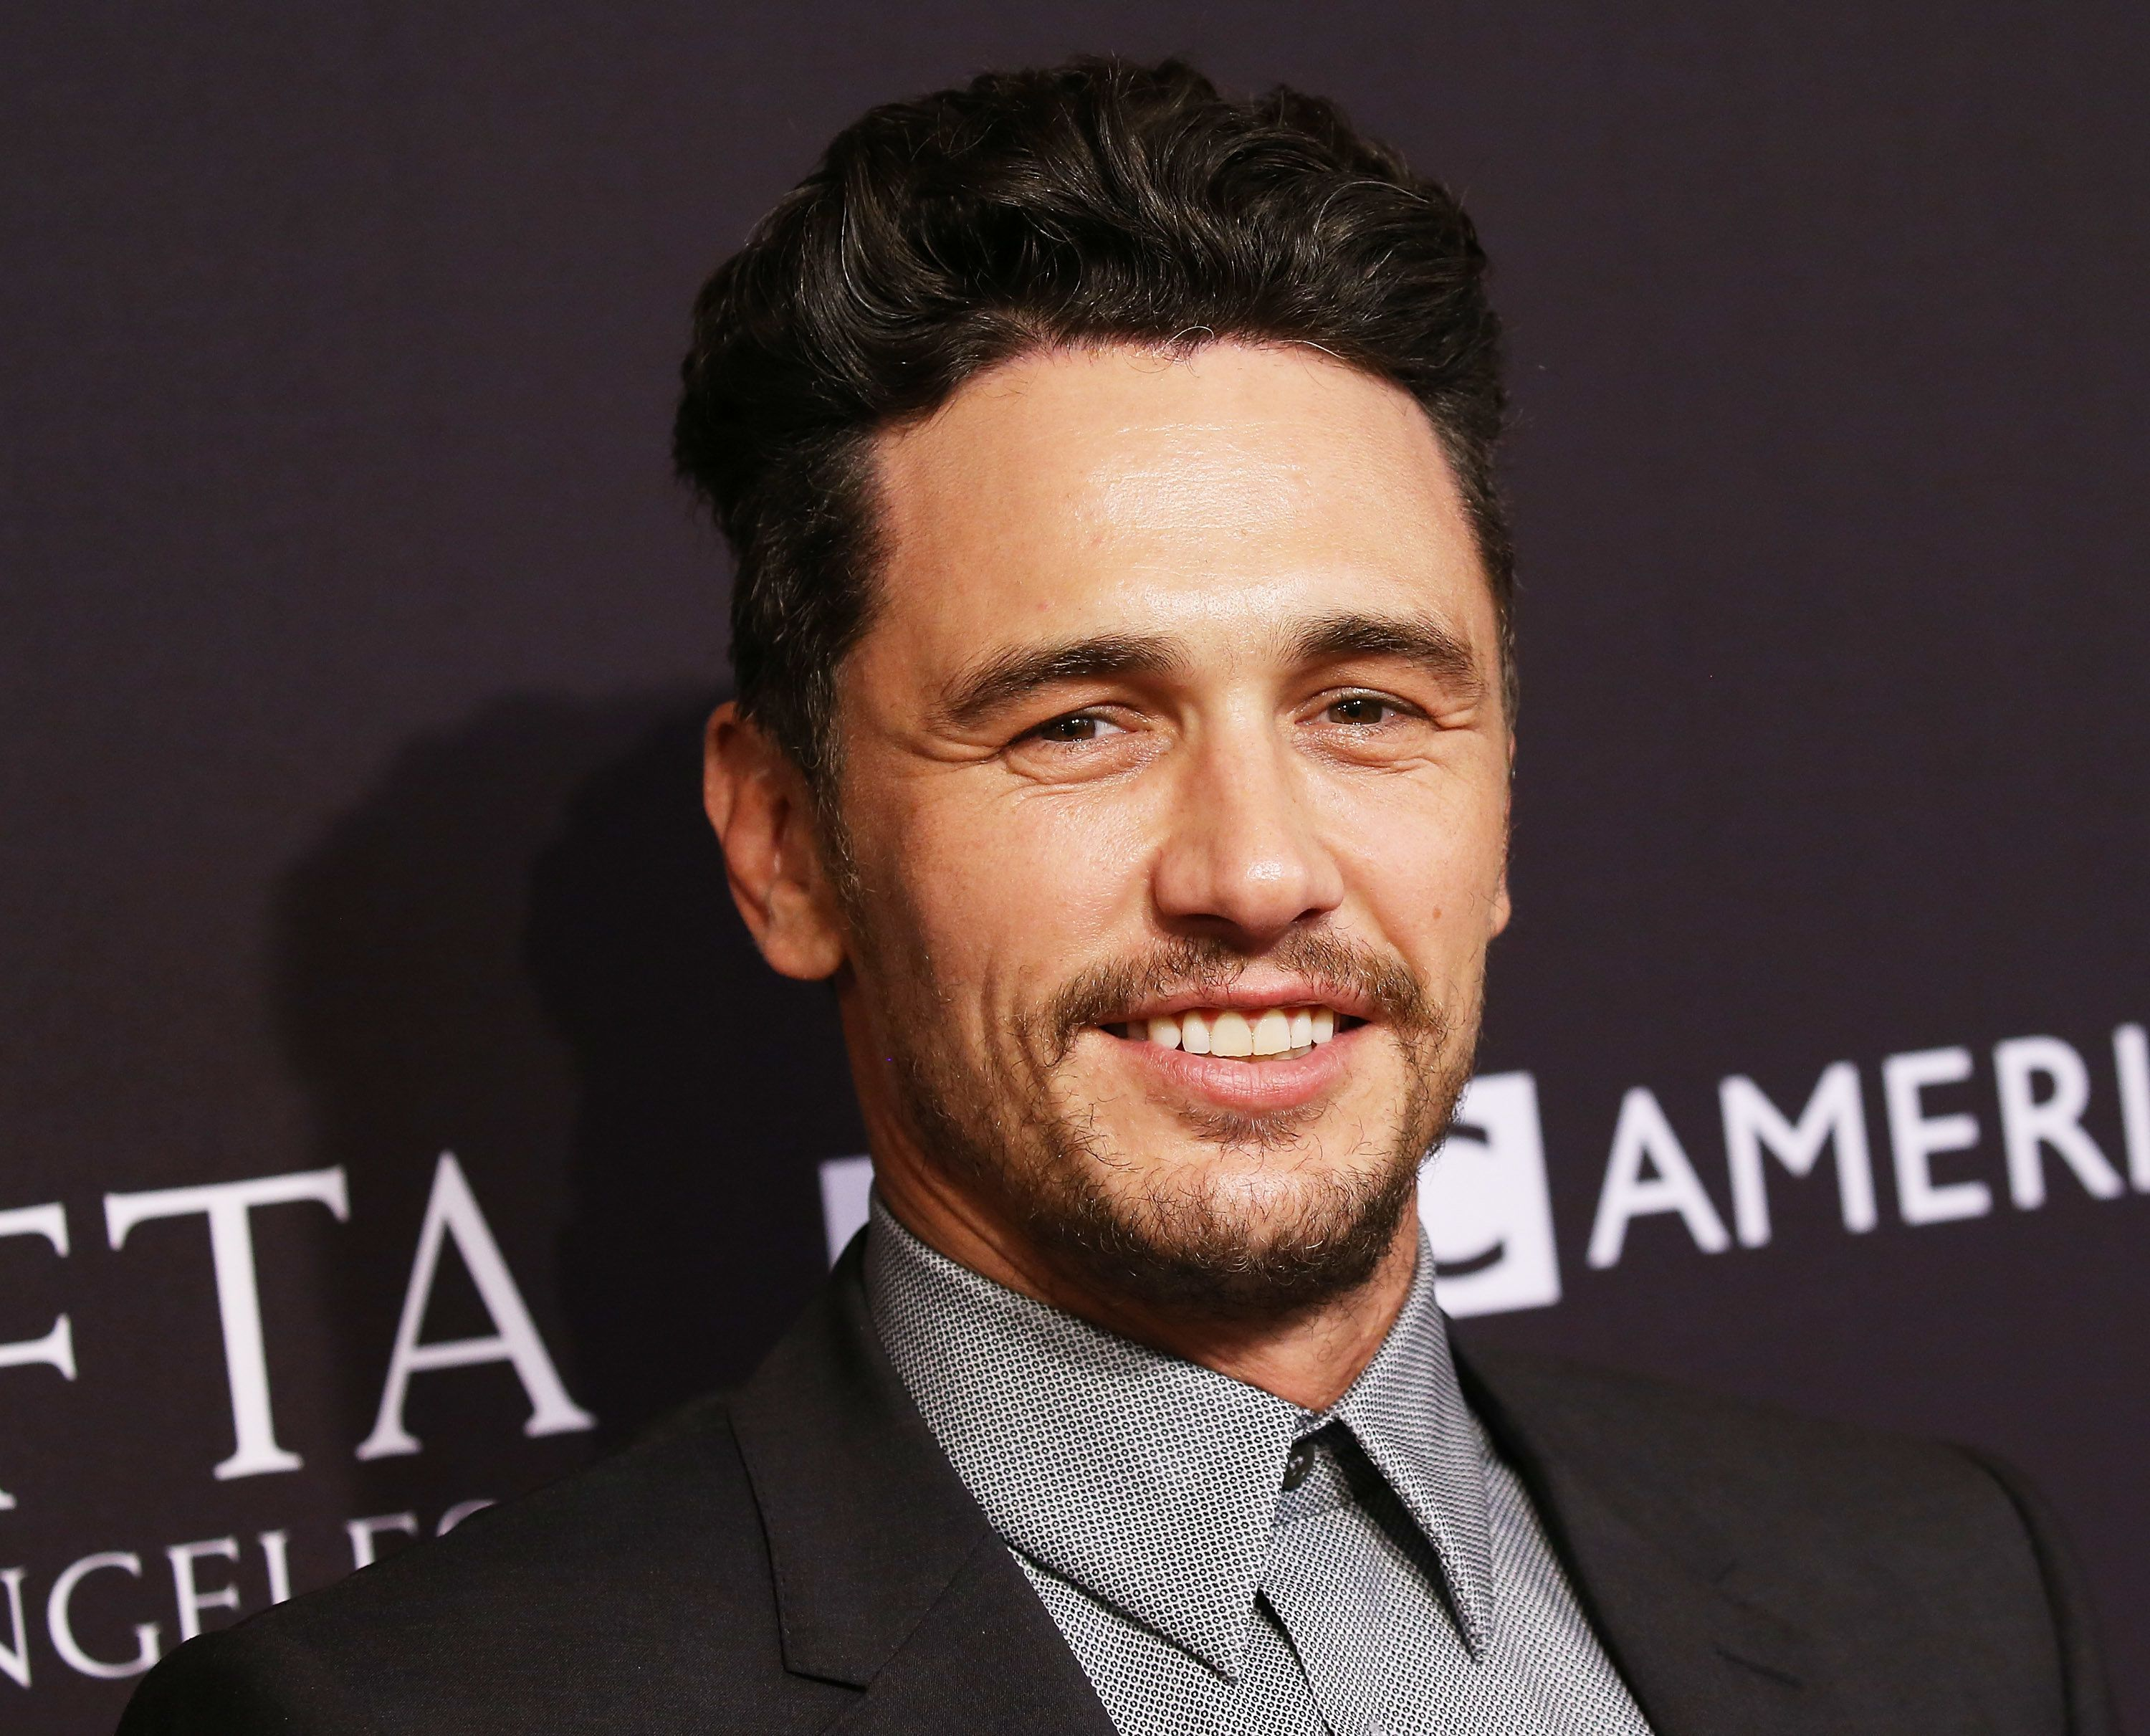 James Franco, seen here on Jan. 6, was digitally removed from the cover of Vanity Fair's 2018 Hollywood issue.